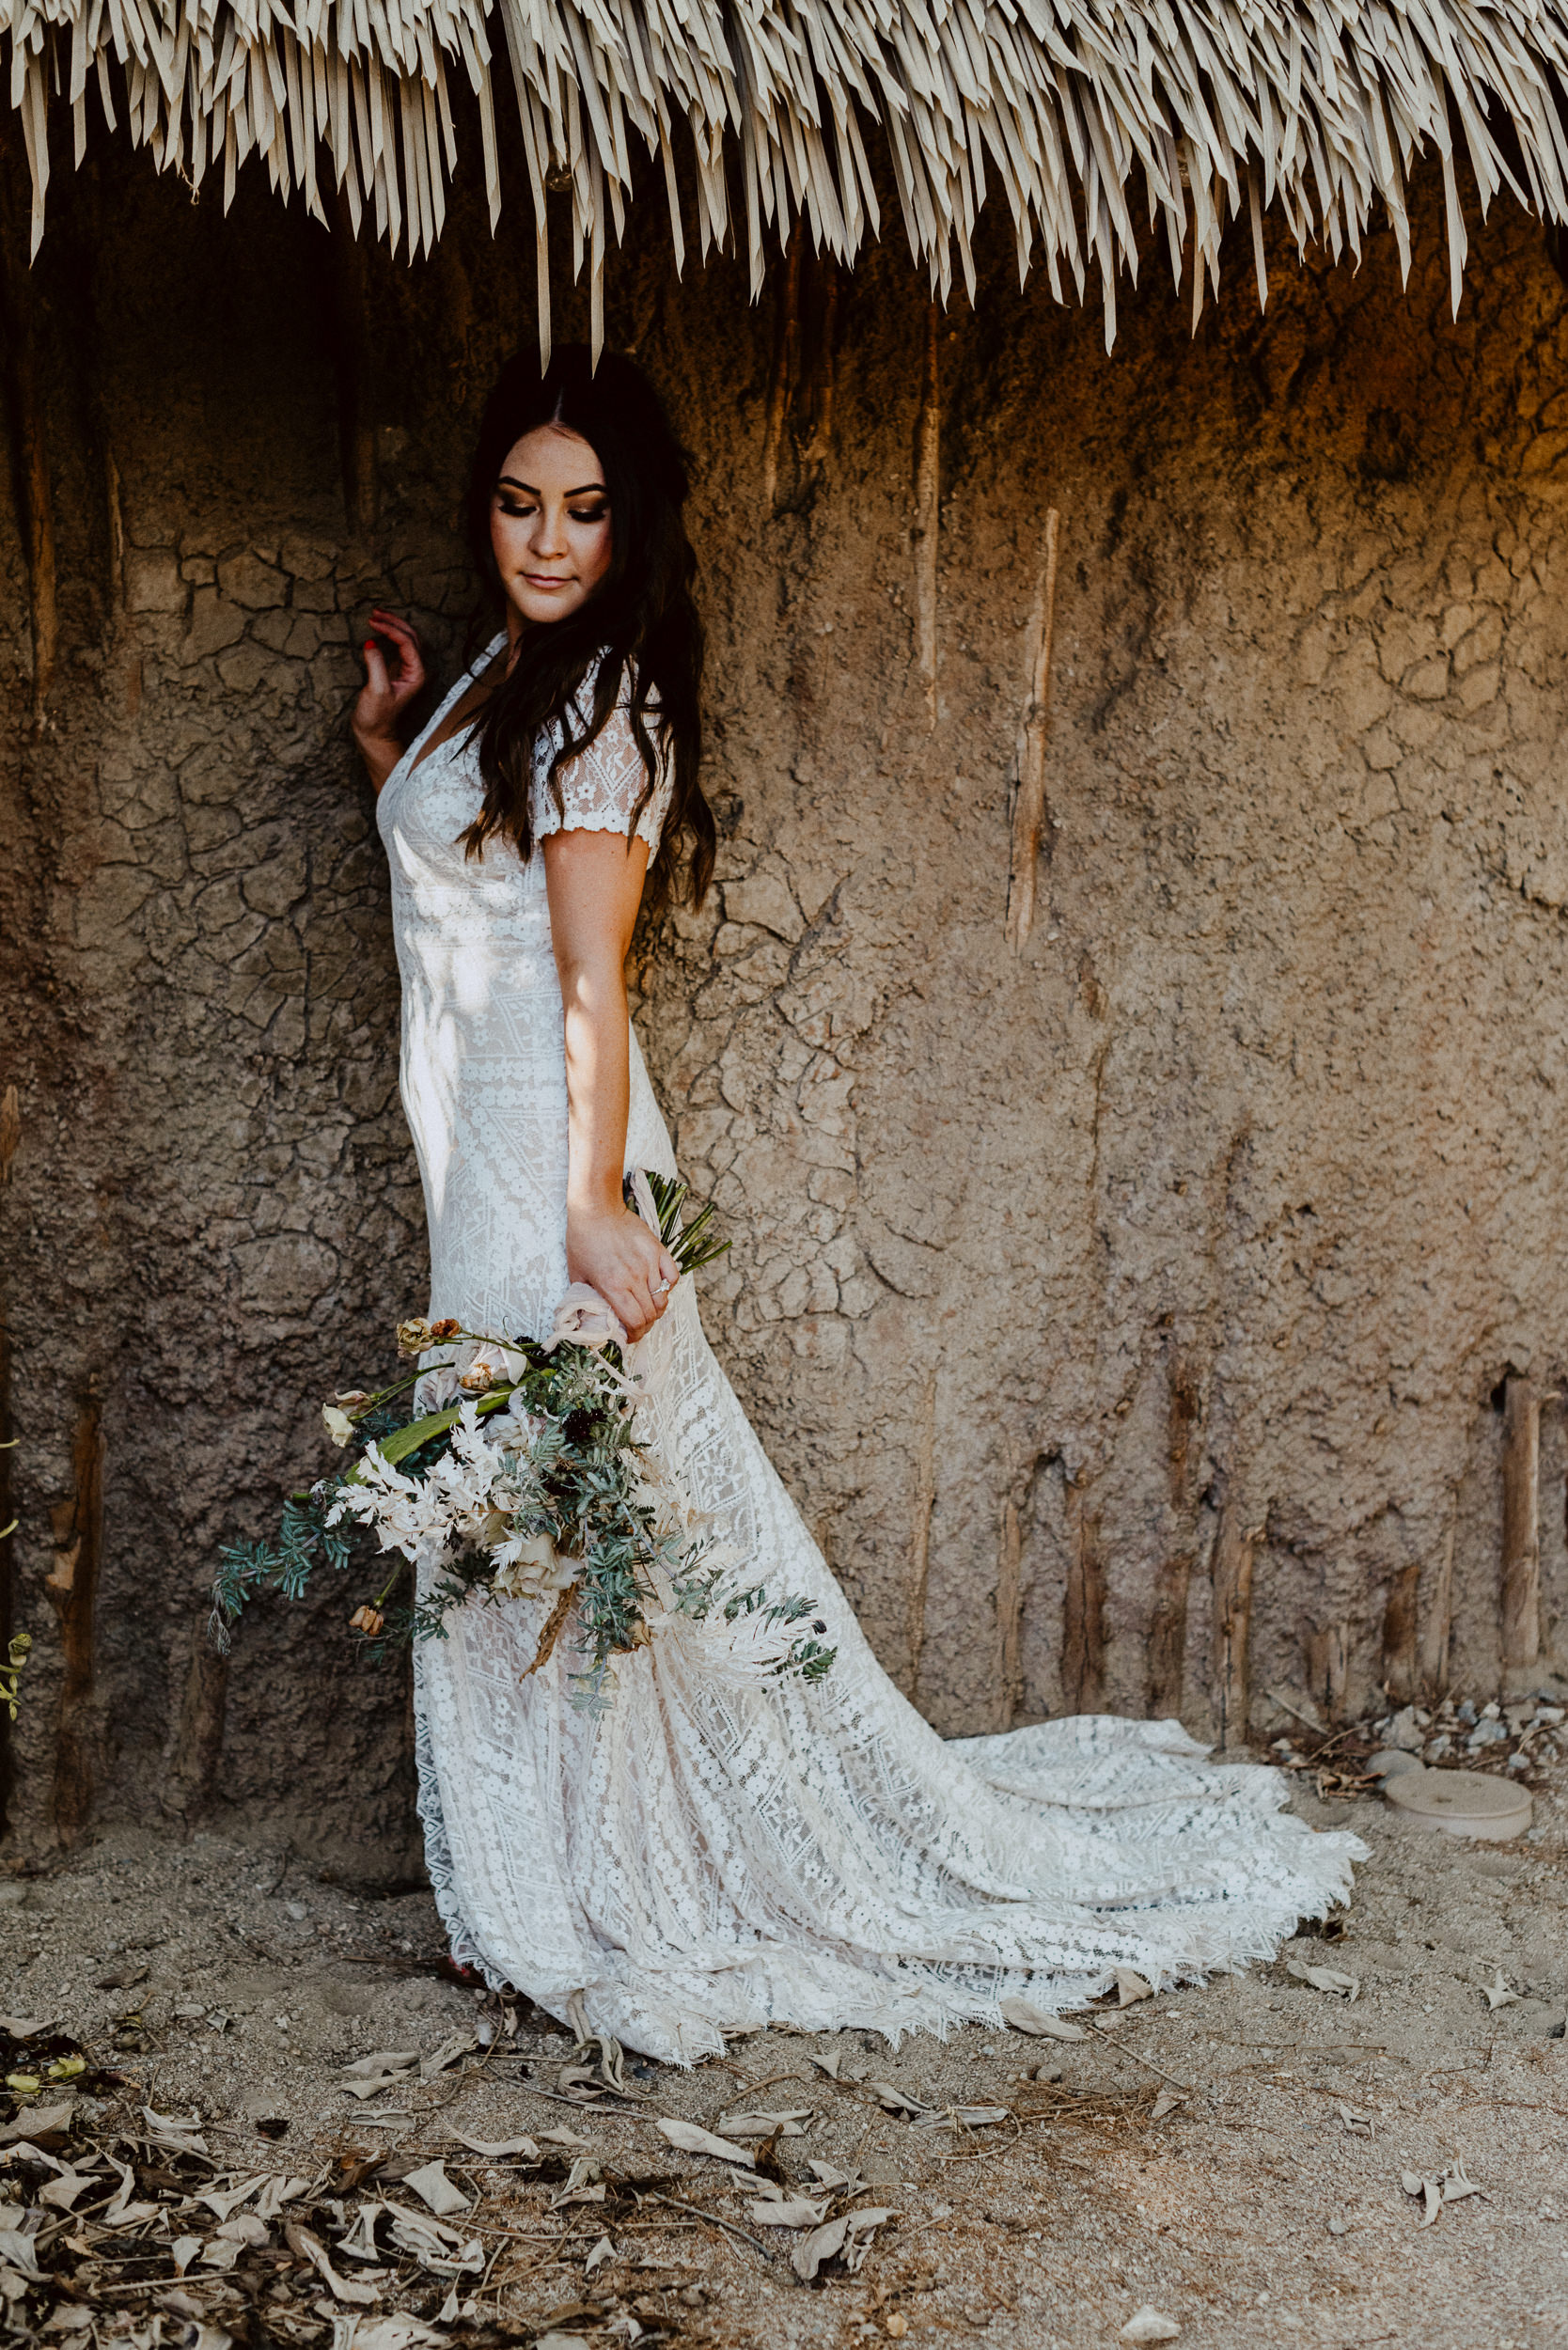 sLindsay + Joel & Friends - The Desert Shootout Elopement at The Living Desert-89.jpg